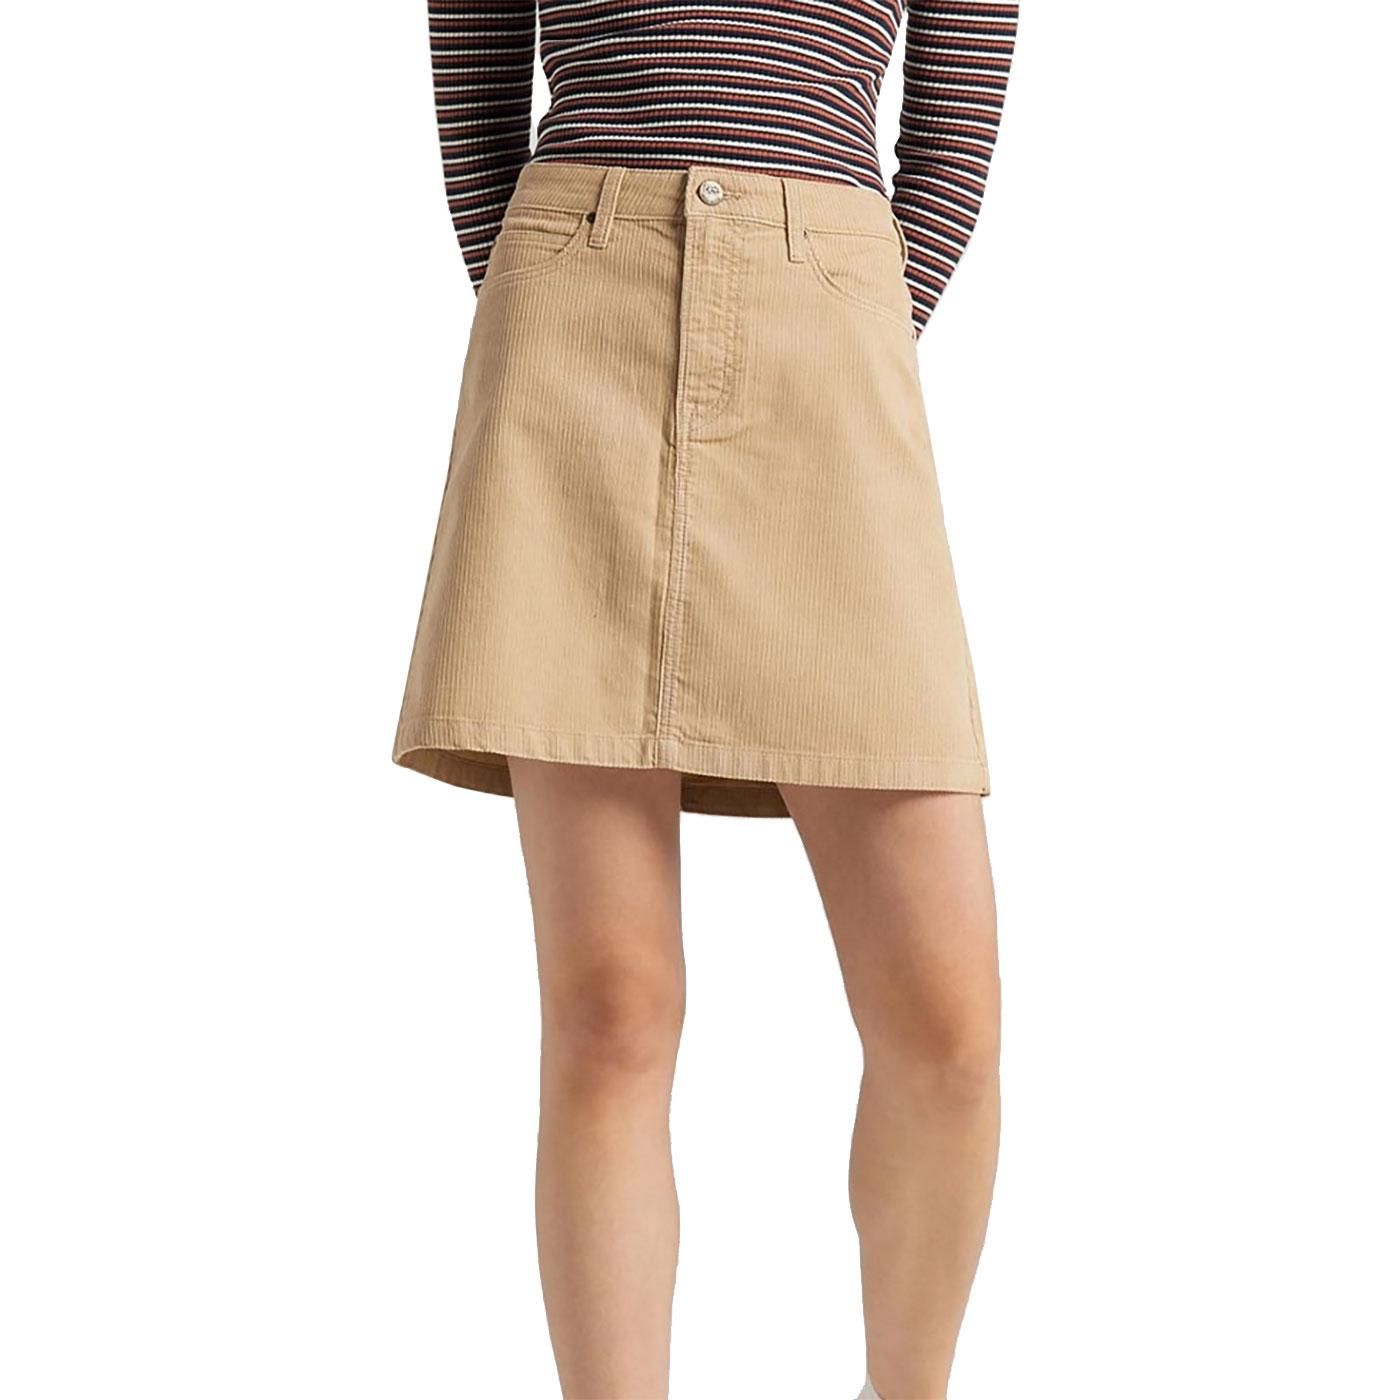 LEE Women's Retro Corduroy A-Line Mini Skirt C